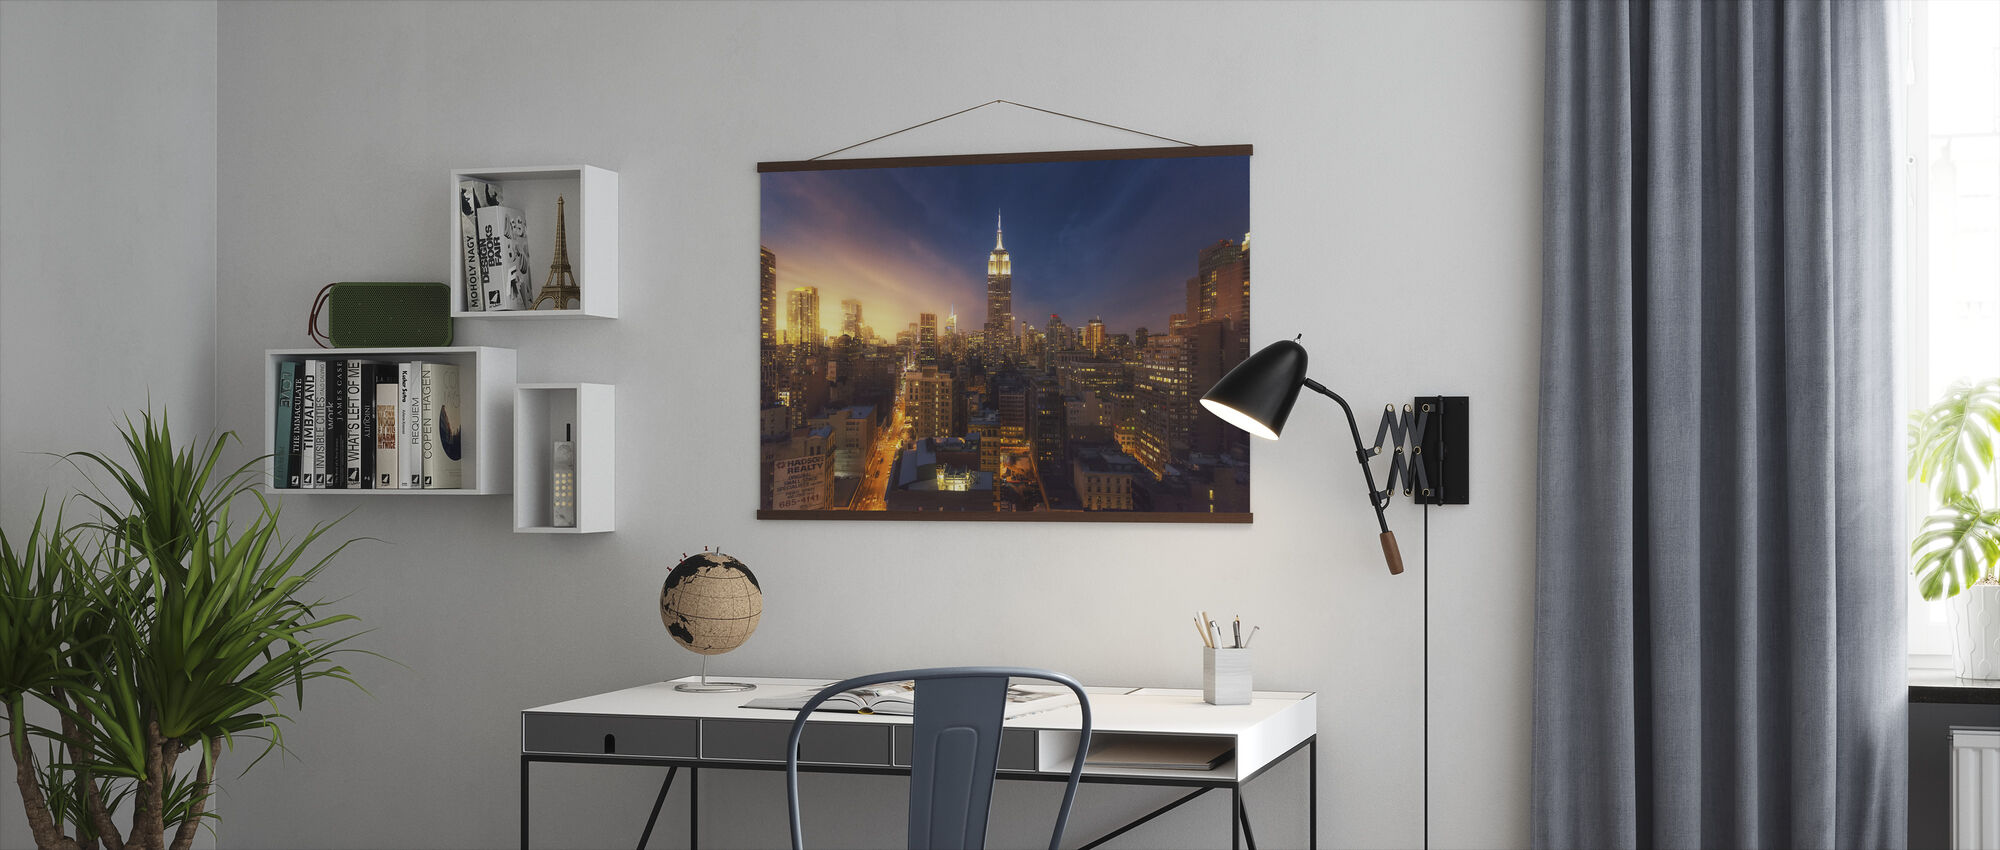 Rooftop - Poster - Office